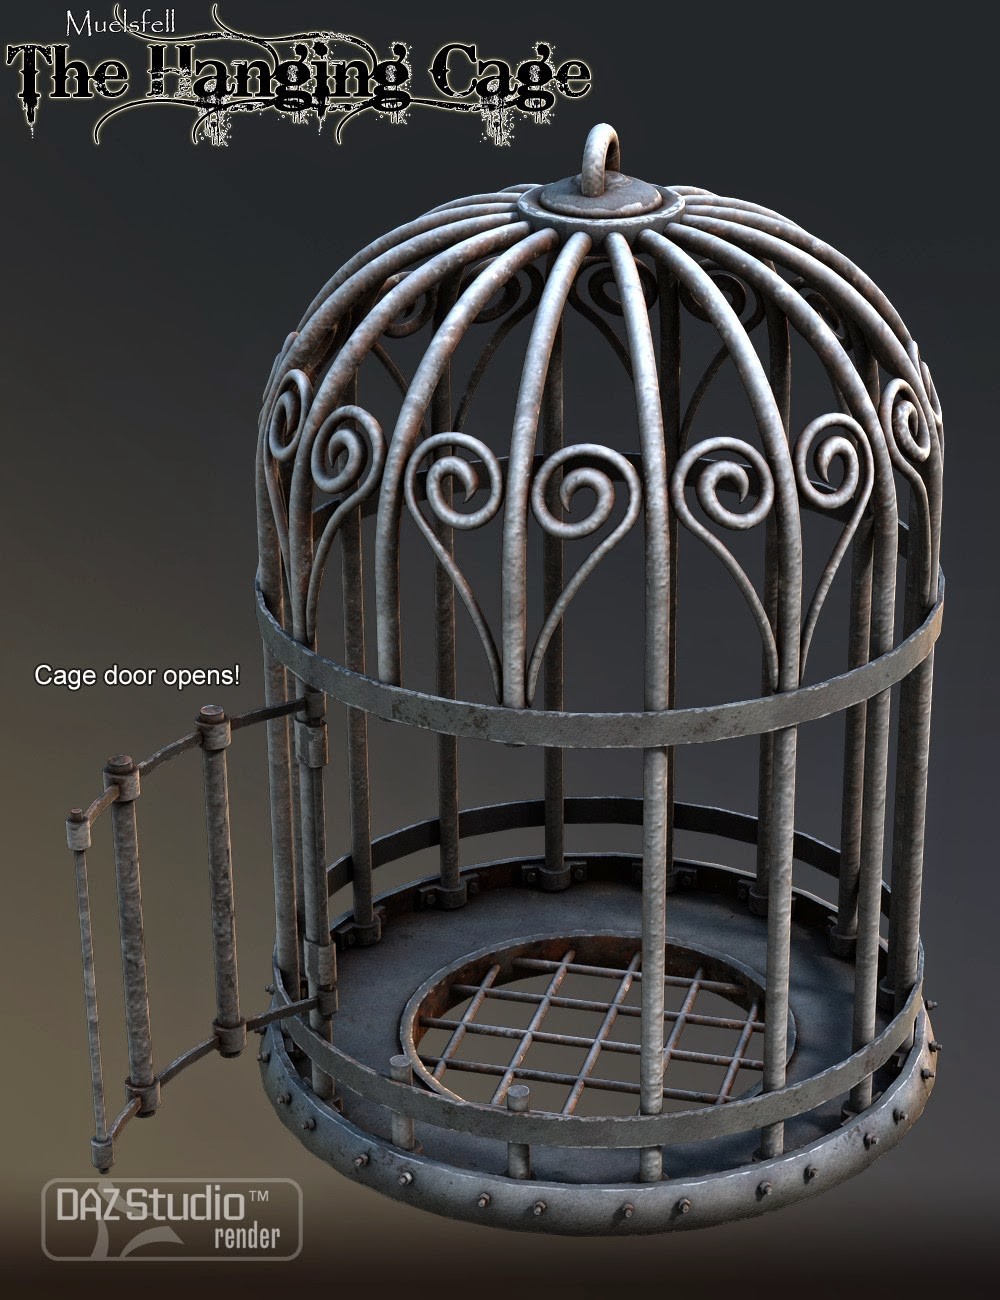 Muelsfell Cage Hanging